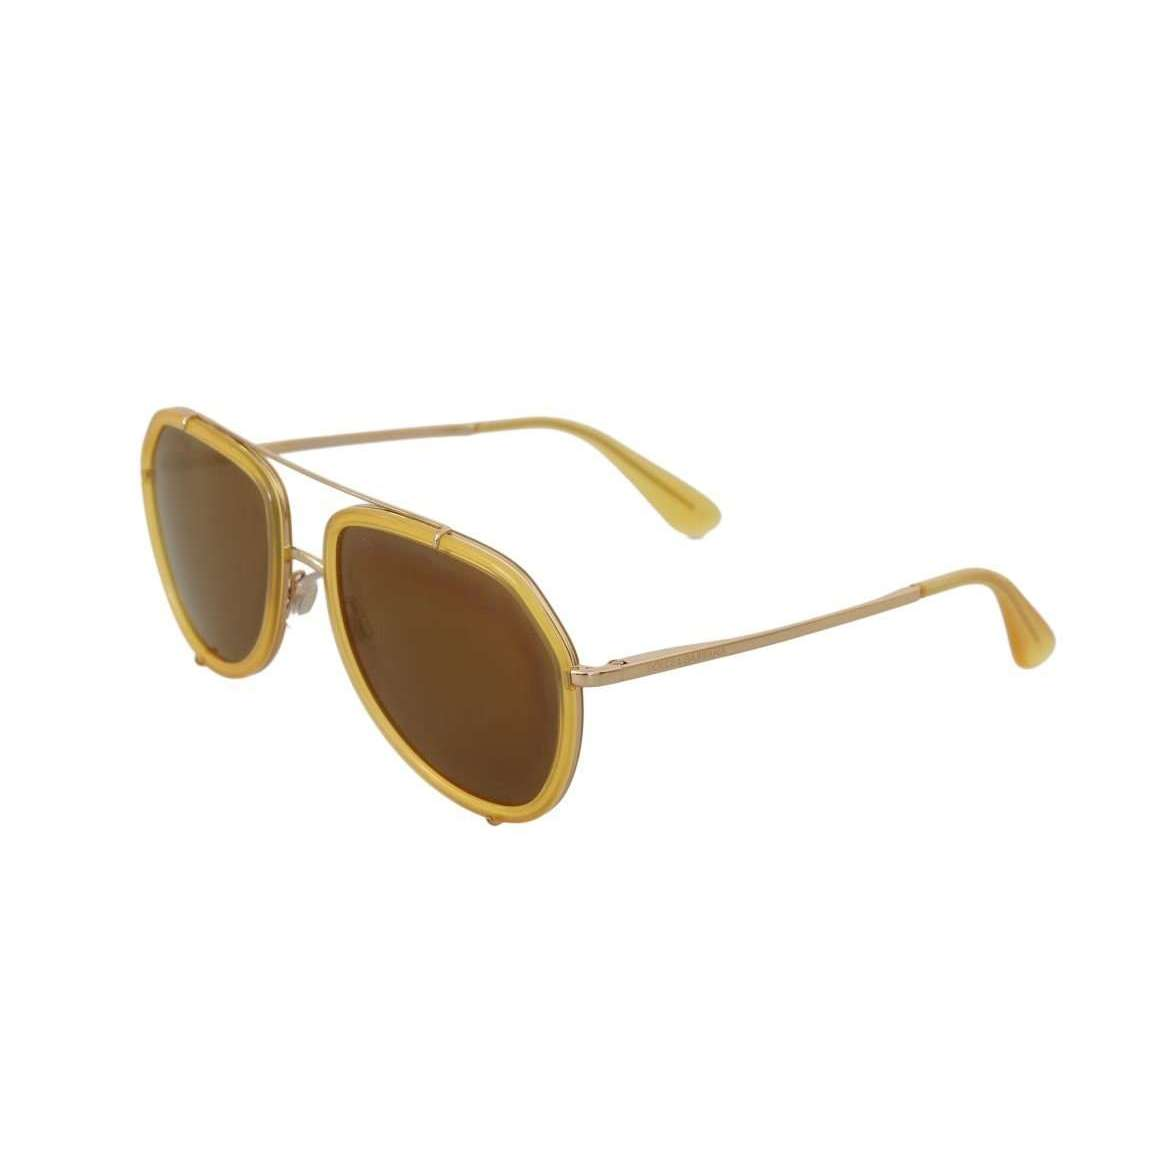 Gold Yellow DG2161 Pilot Sunglasses